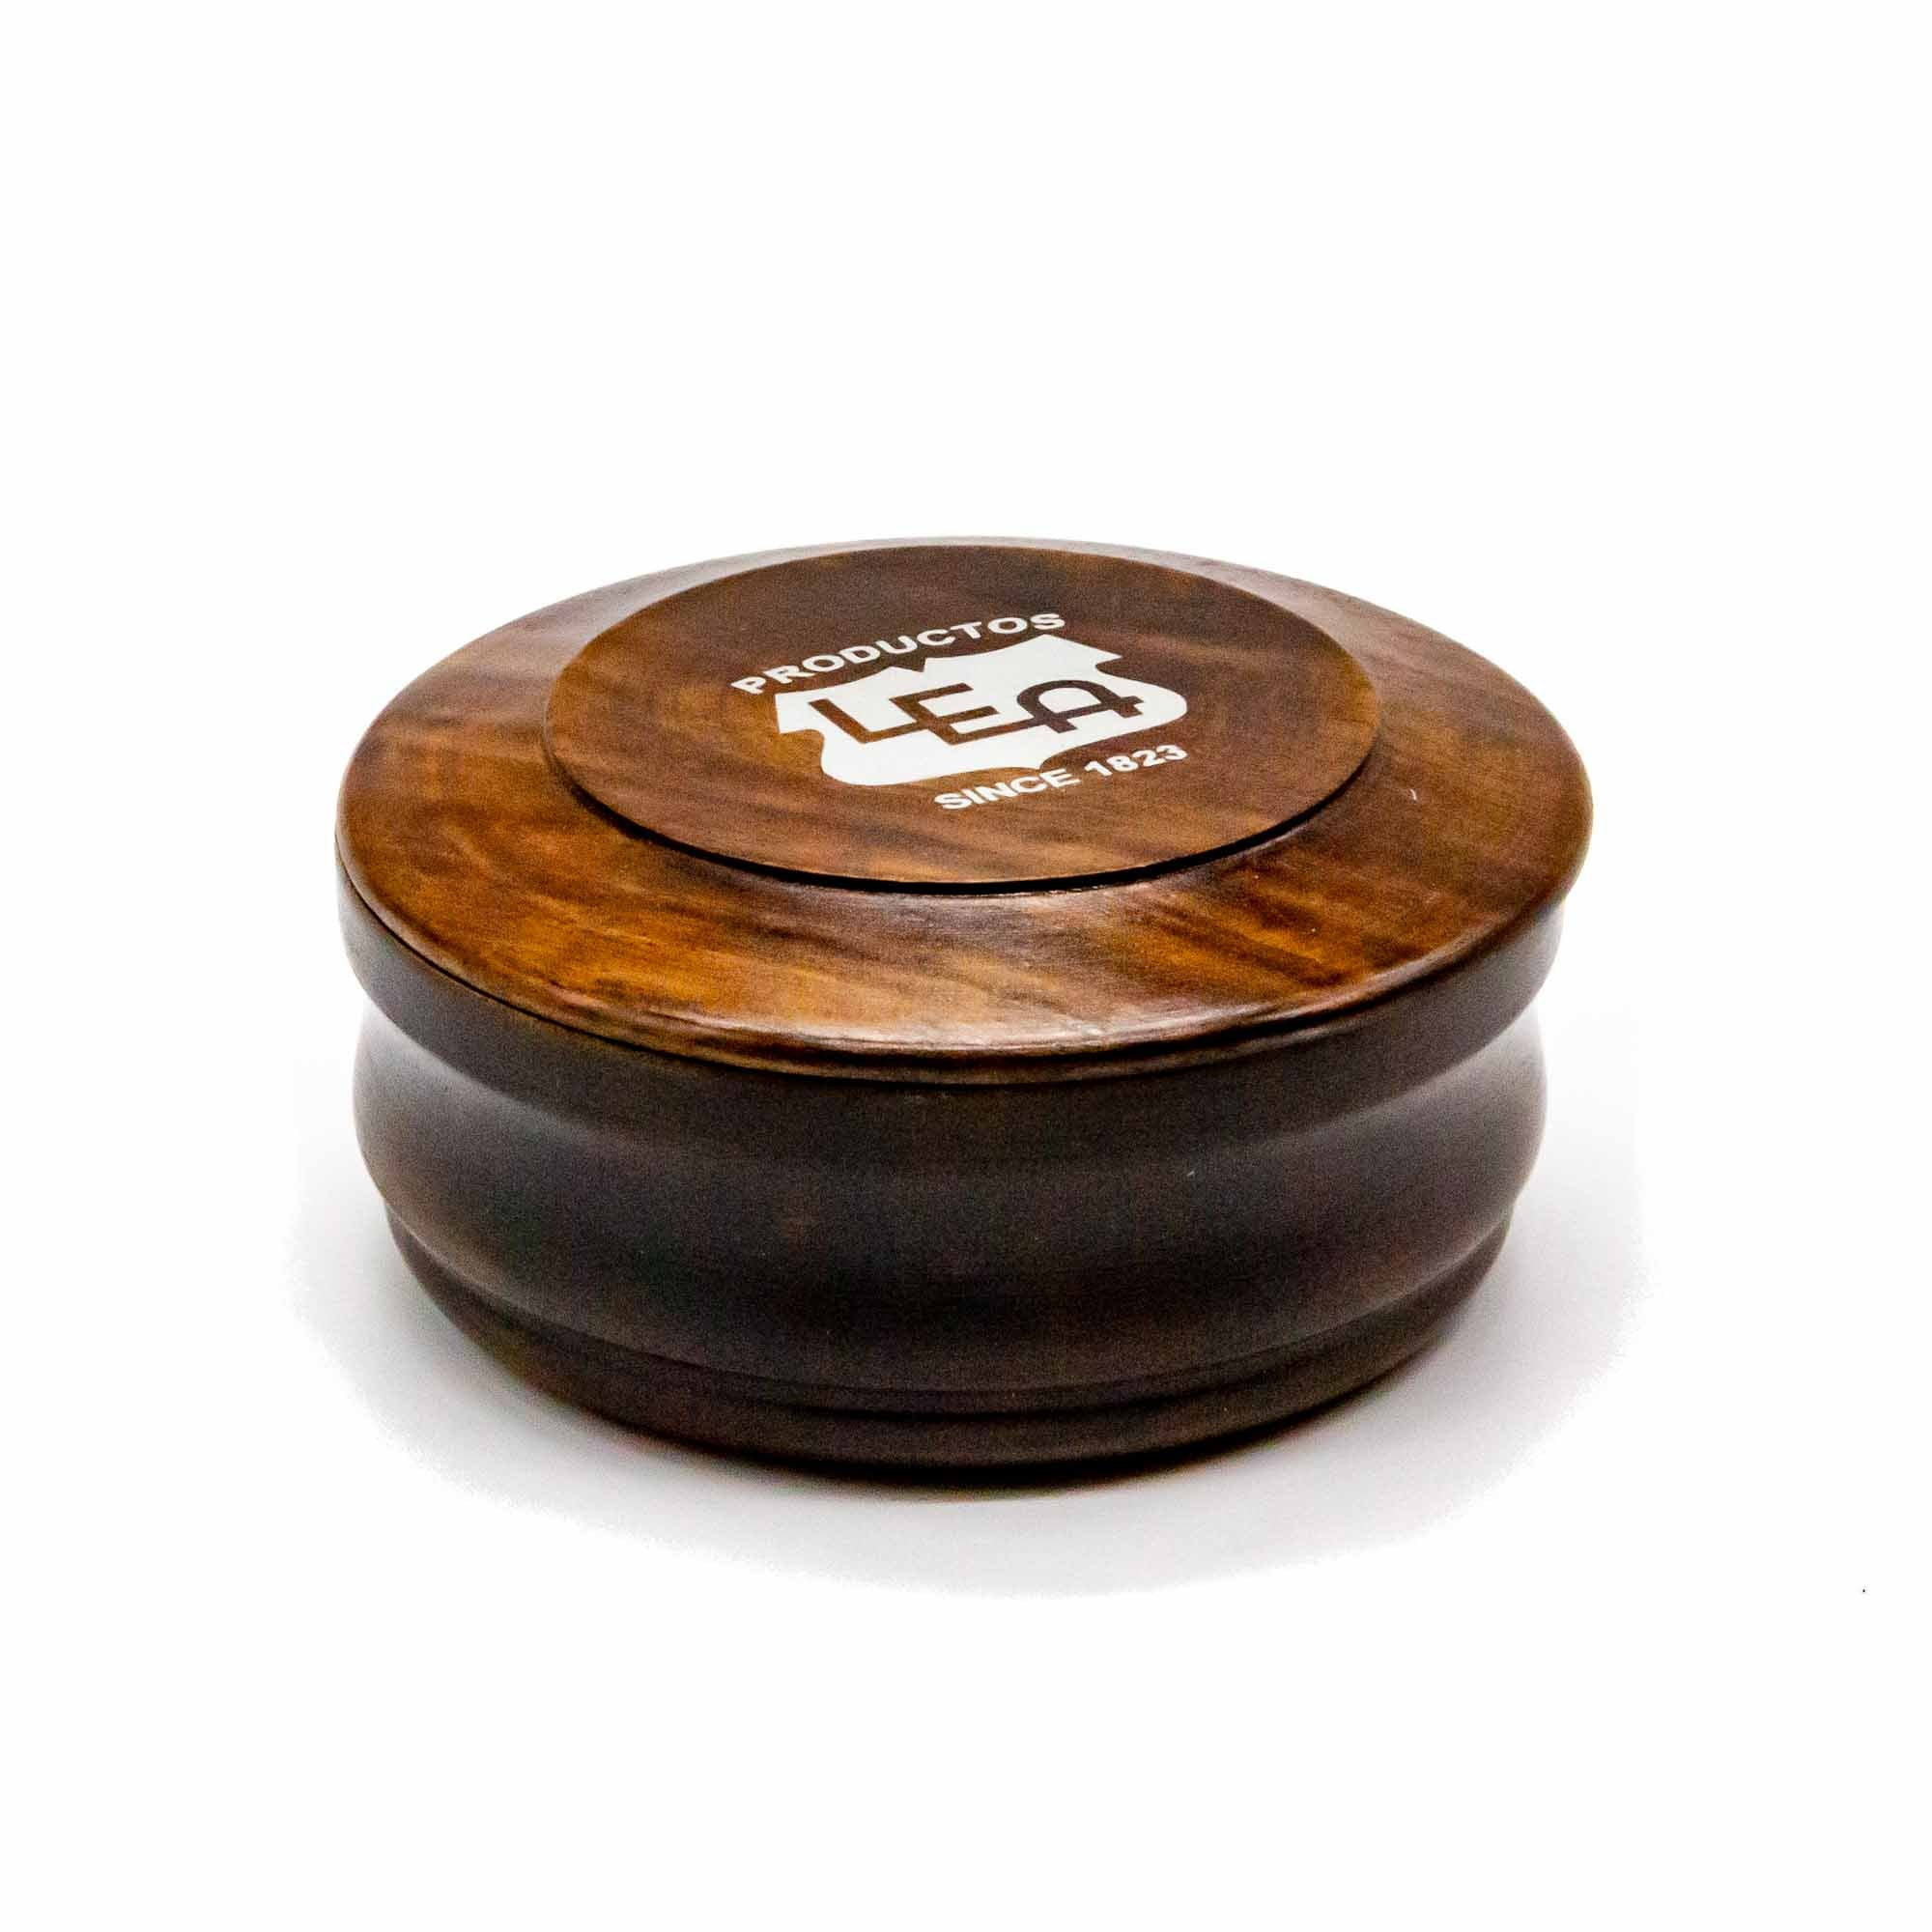 Lea Shaving Soap with Wooden Bowl - Mortise And Tenon